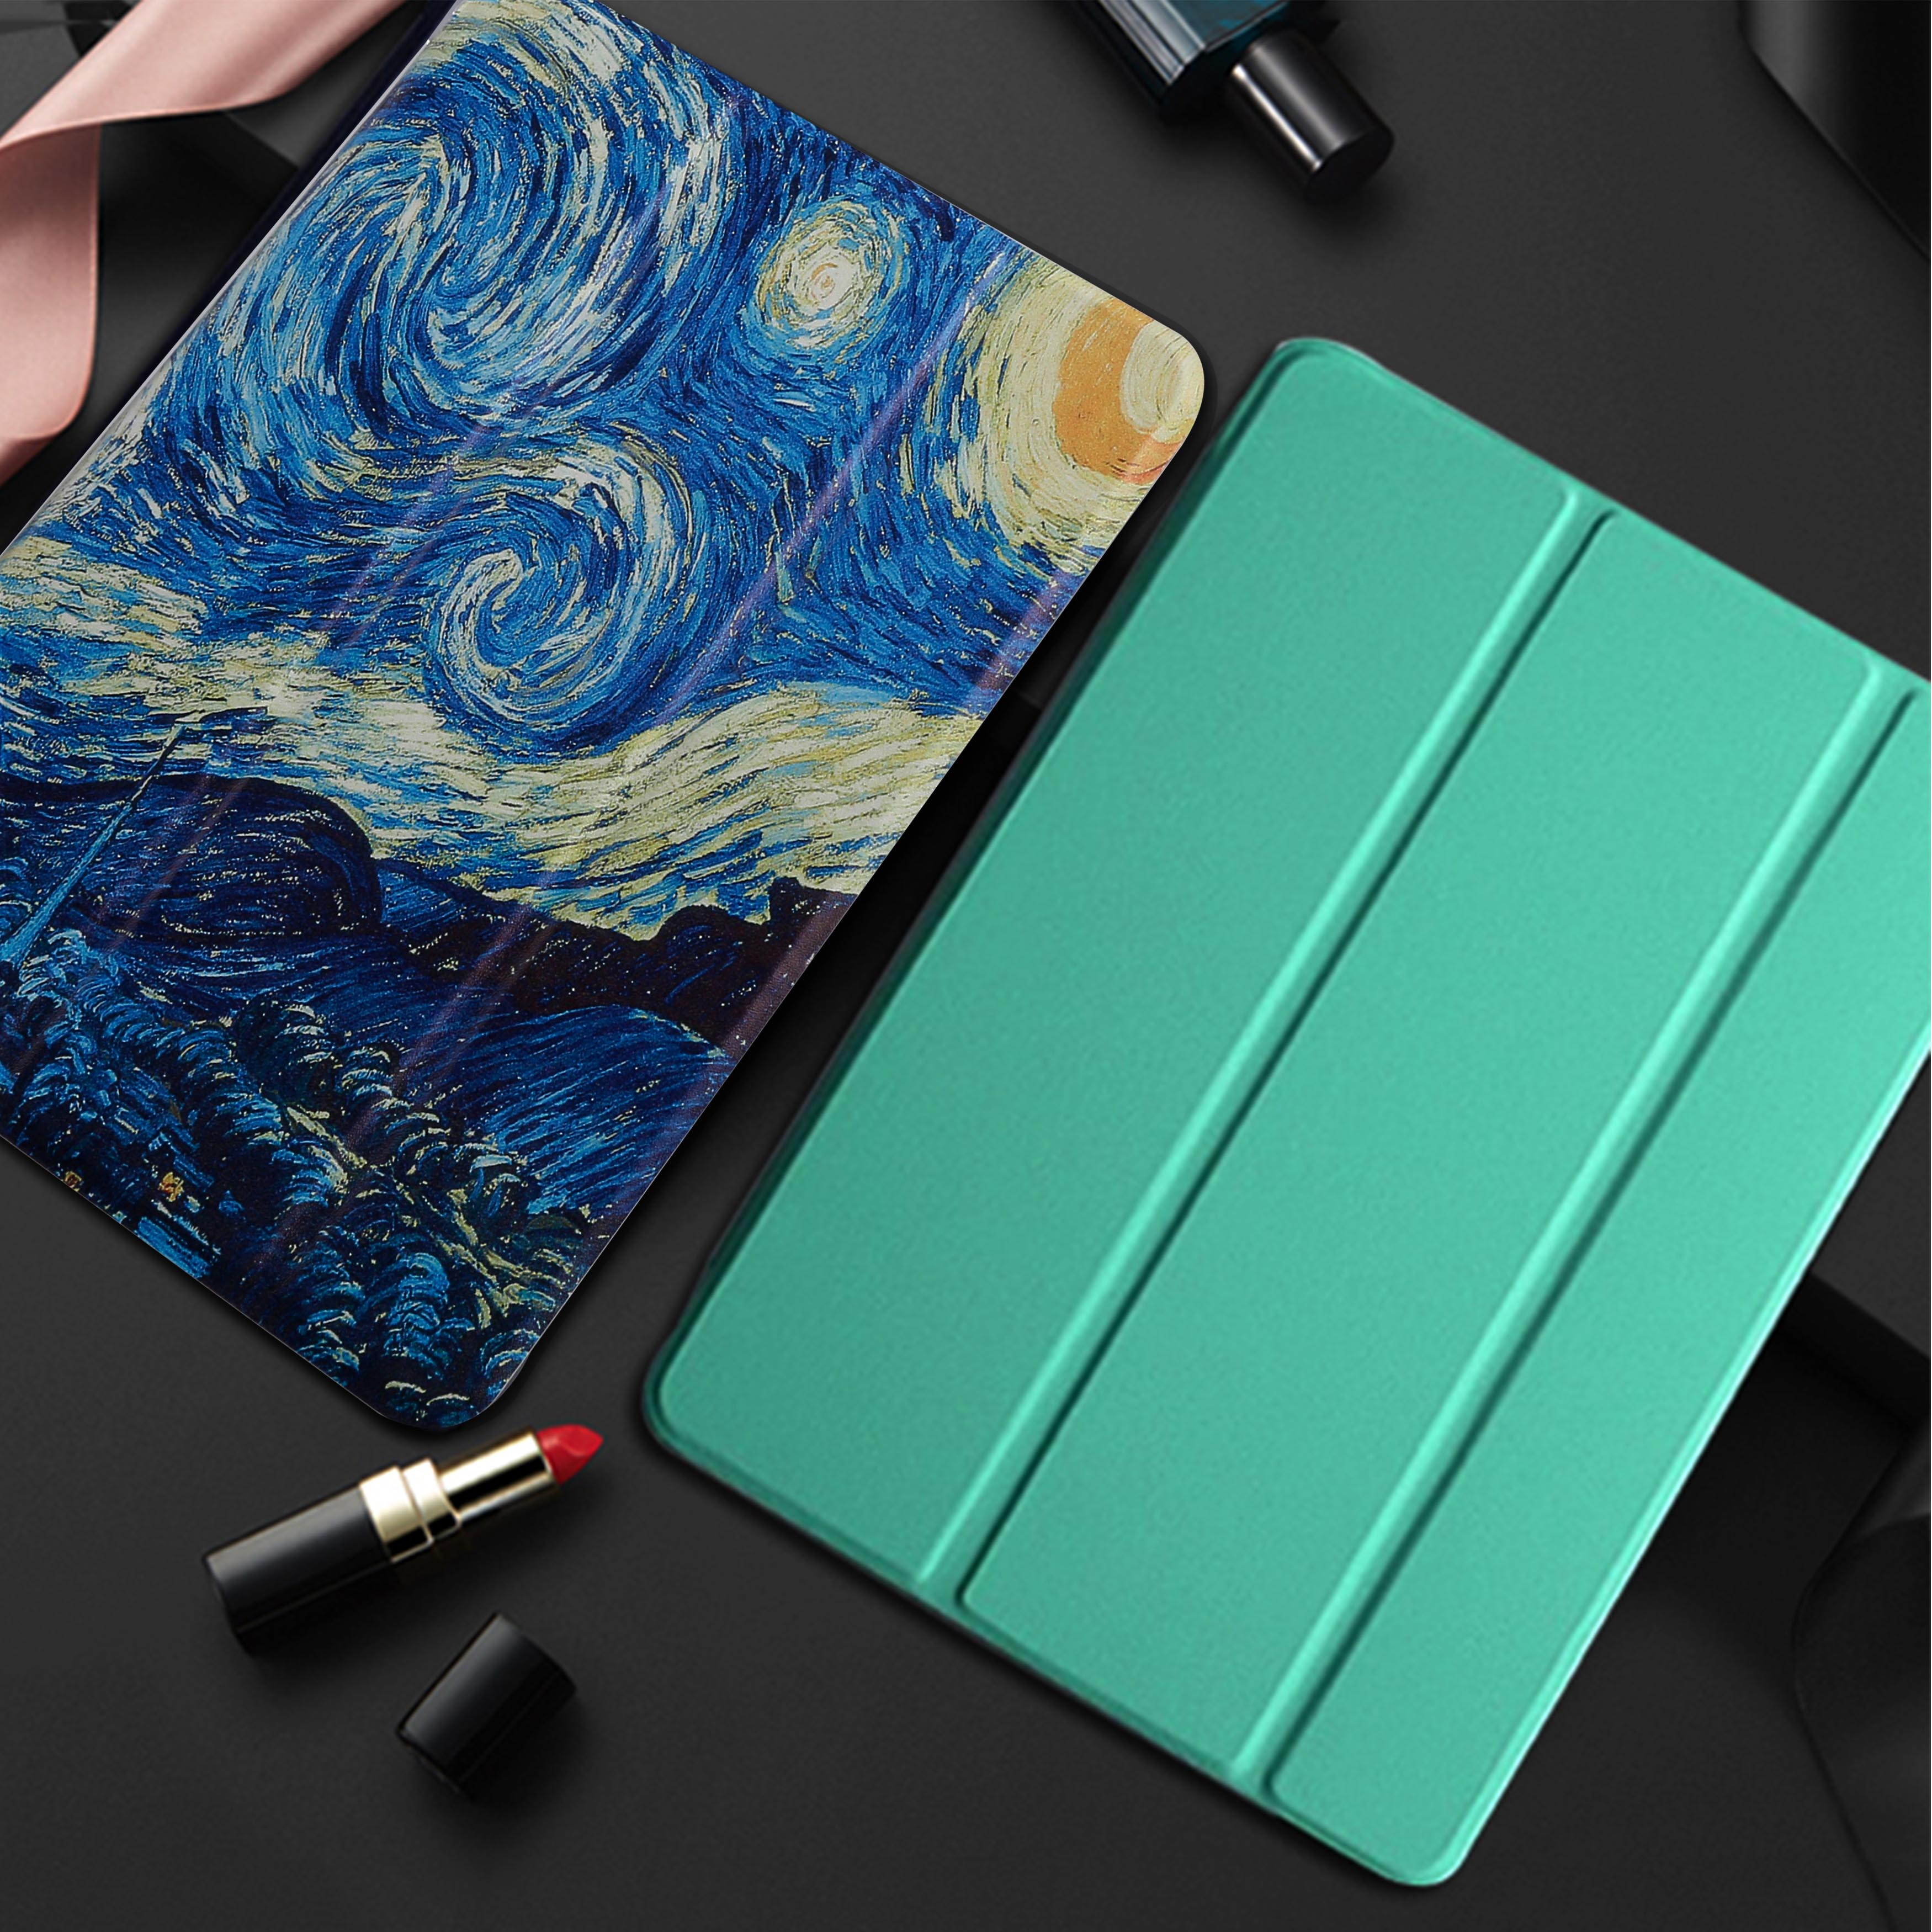 Tablet Case For IPad Pro 9.7 Inch 2016 A1673 A1674 Fundas PU Ultra Slim Wake Smart Cover Case For Ipad Pro 9.7 Protective Case